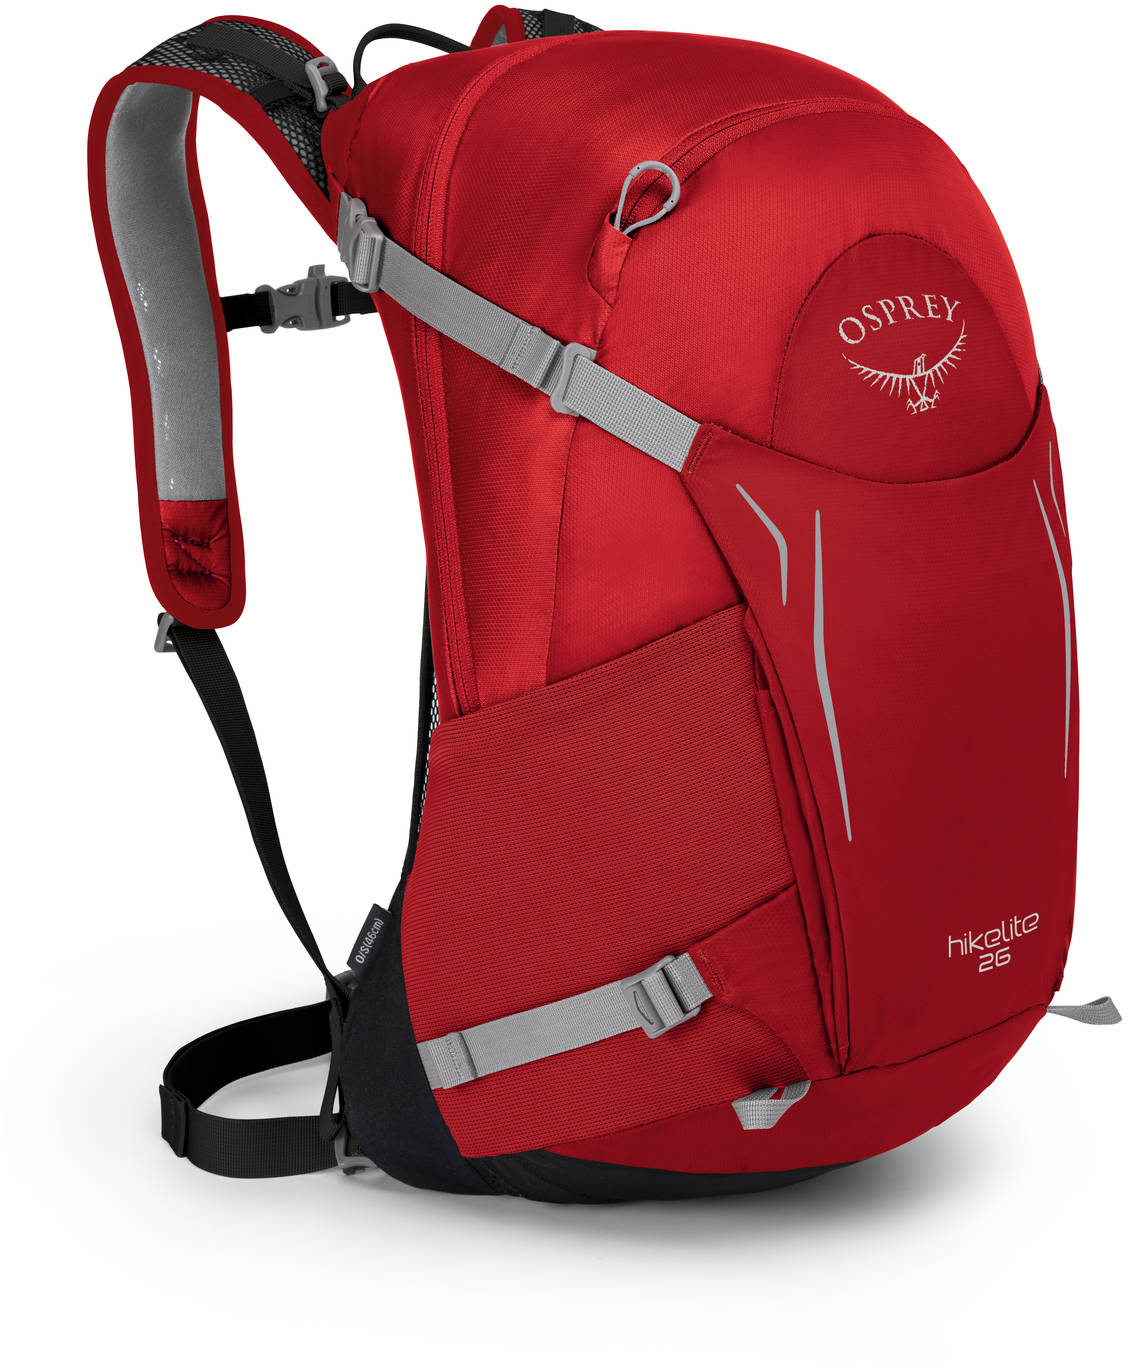 Туристические рюкзаки Рюкзак Osprey Hikelite 26 TOMATO RED HIkelite26_S18_Side_TomatoRed_web.jpg